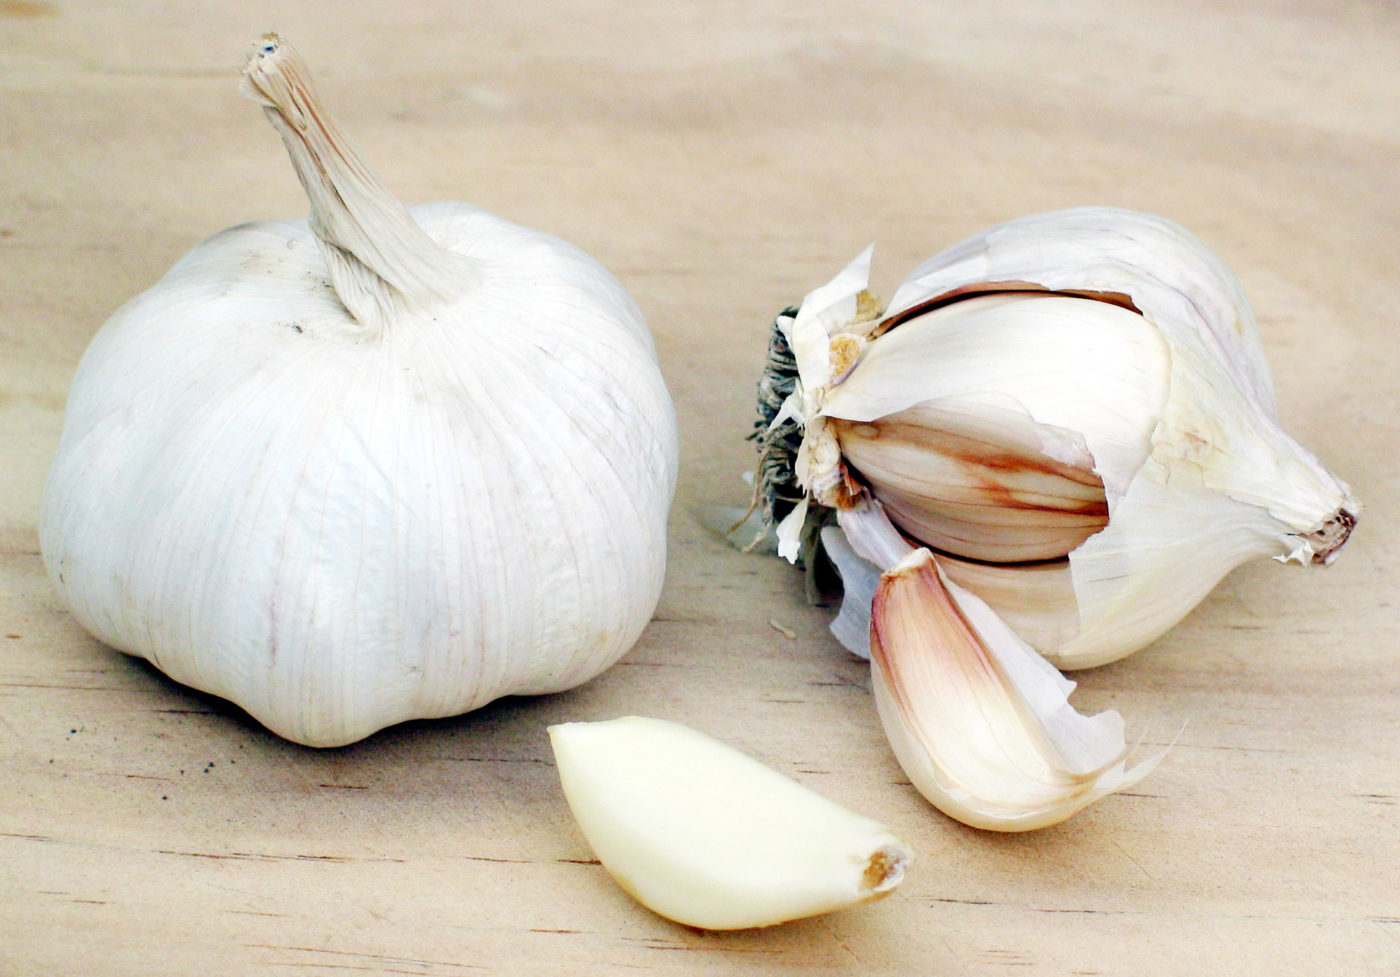 a clove of garlic a zero calorie foods